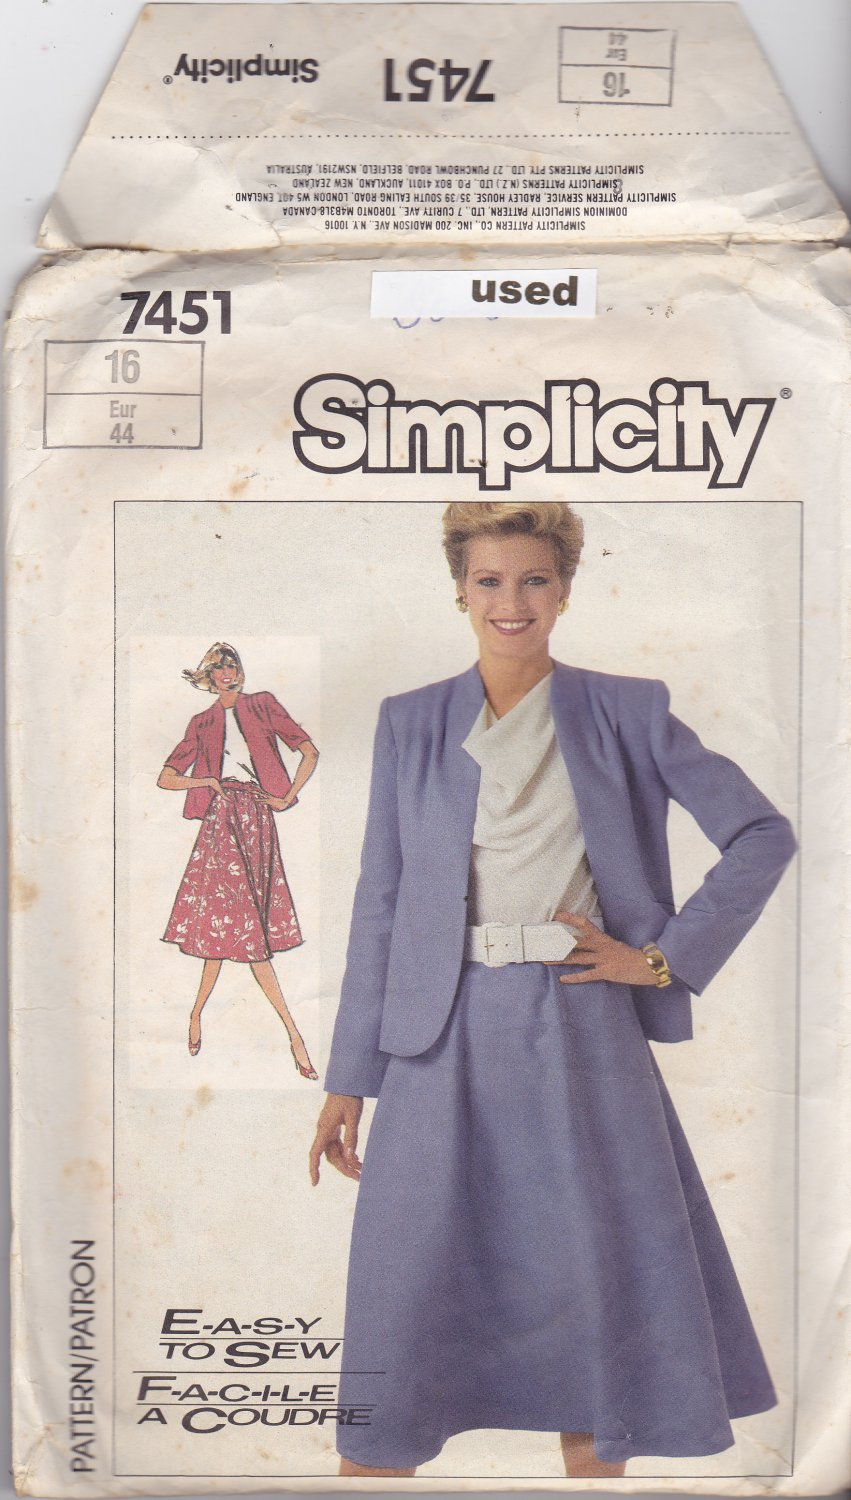 Simplicity 7451 size 16, may be missing pieces